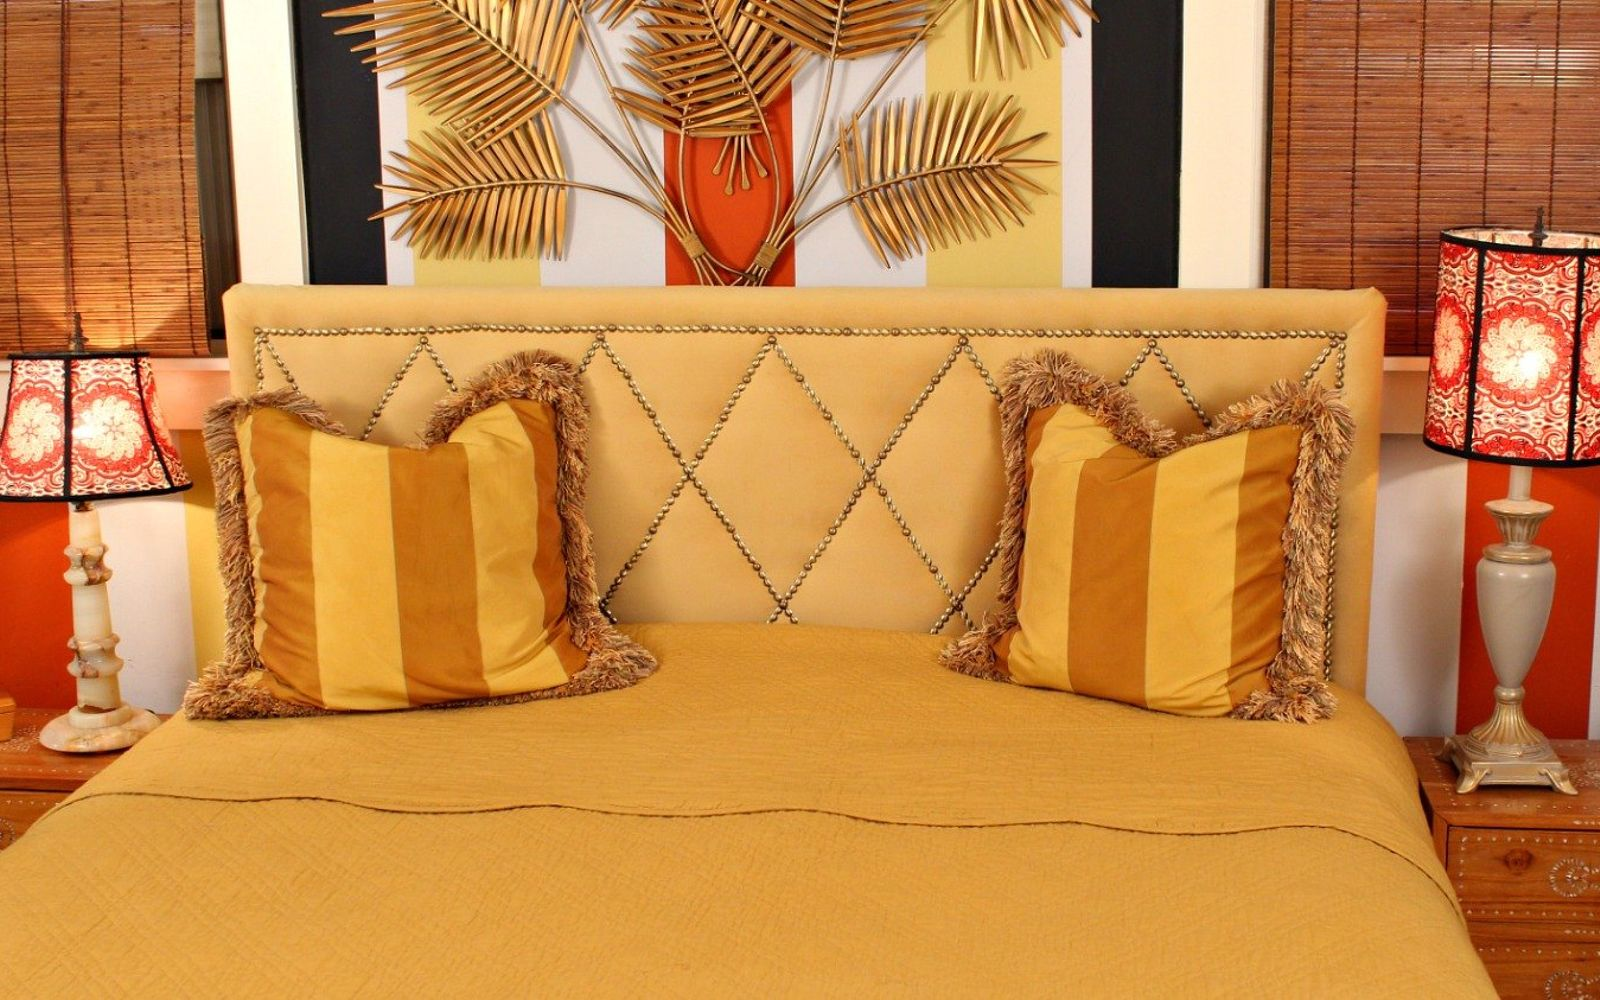 s these are the diy headboard ideas you ve been dreaming of, Or A Harlequin Nailhead Trim